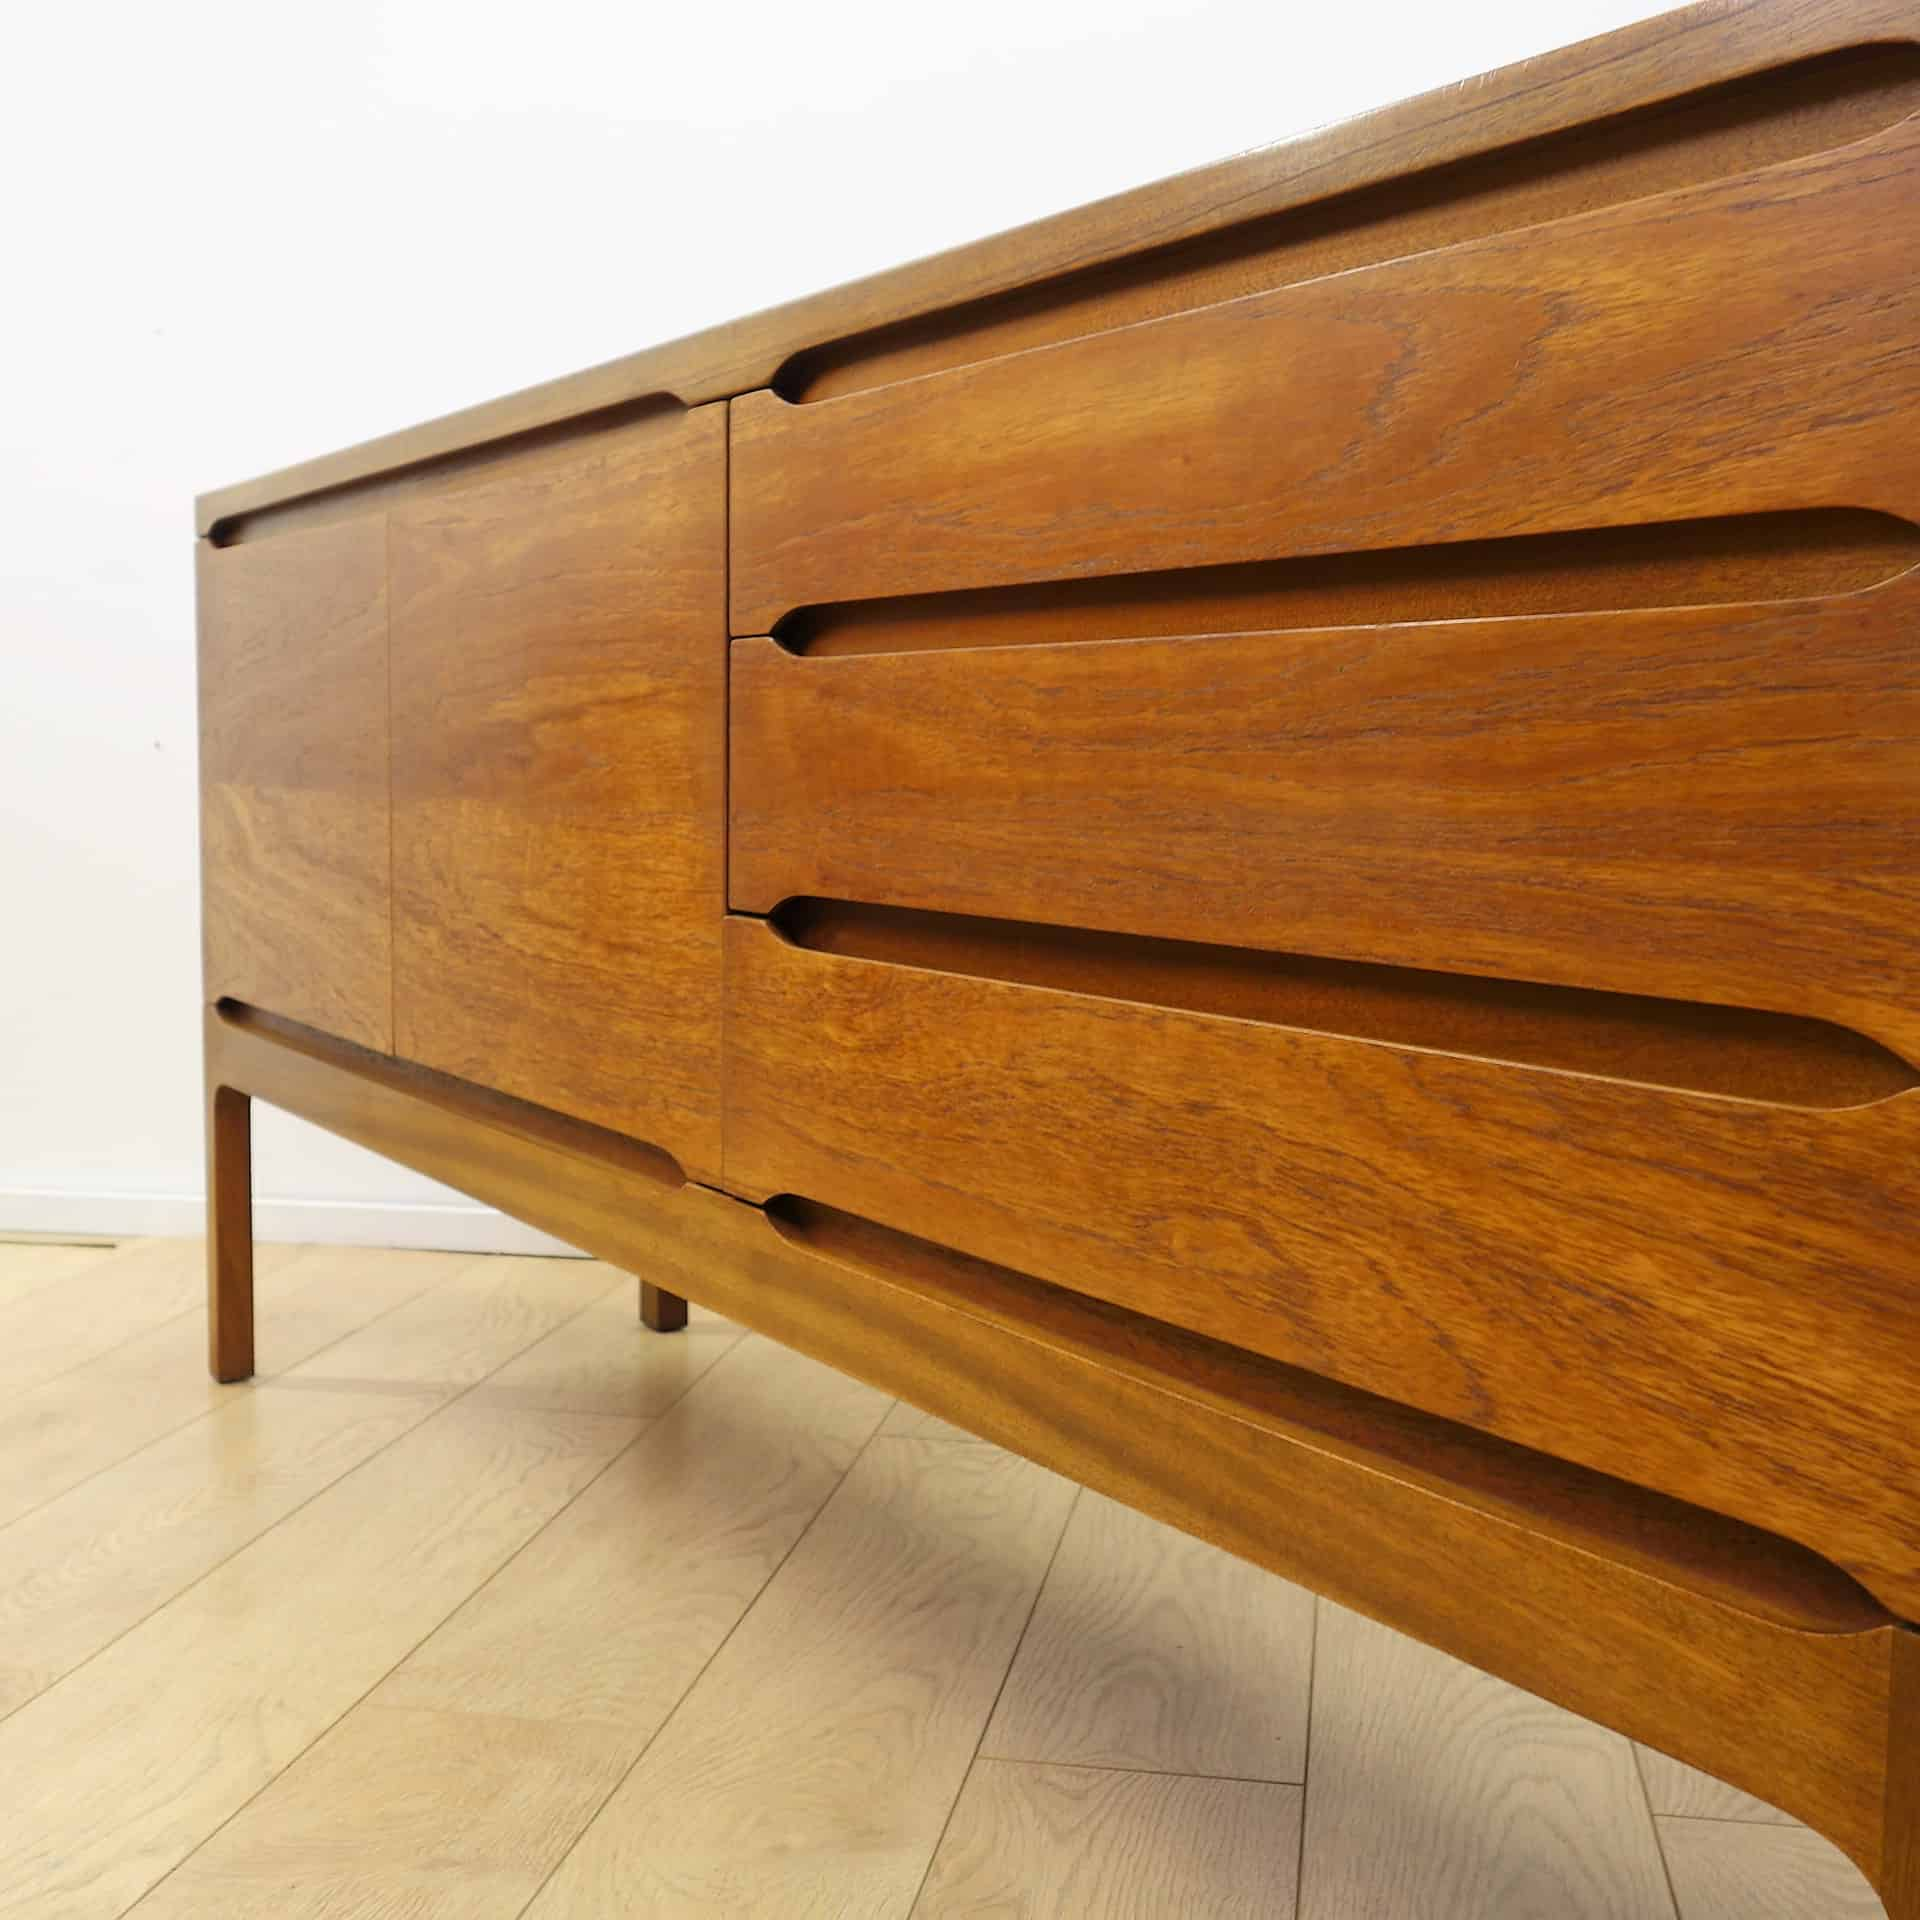 1960s British teak sideboard